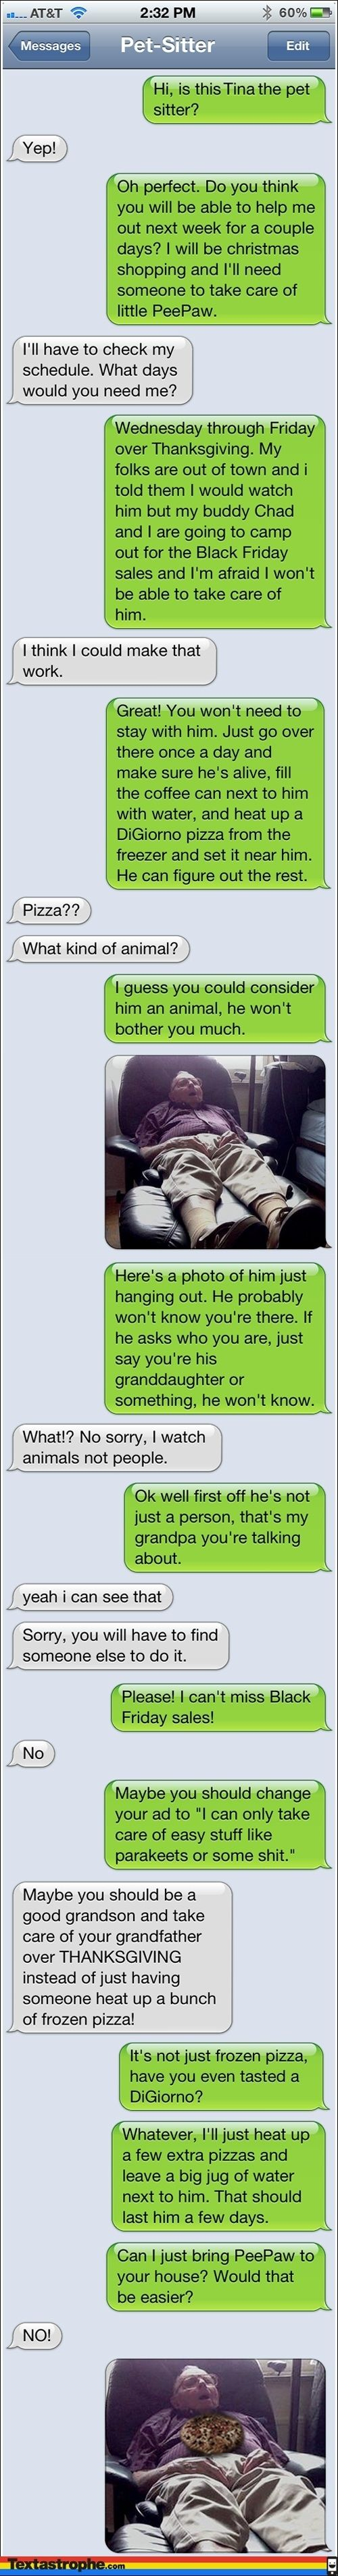 Text pranks